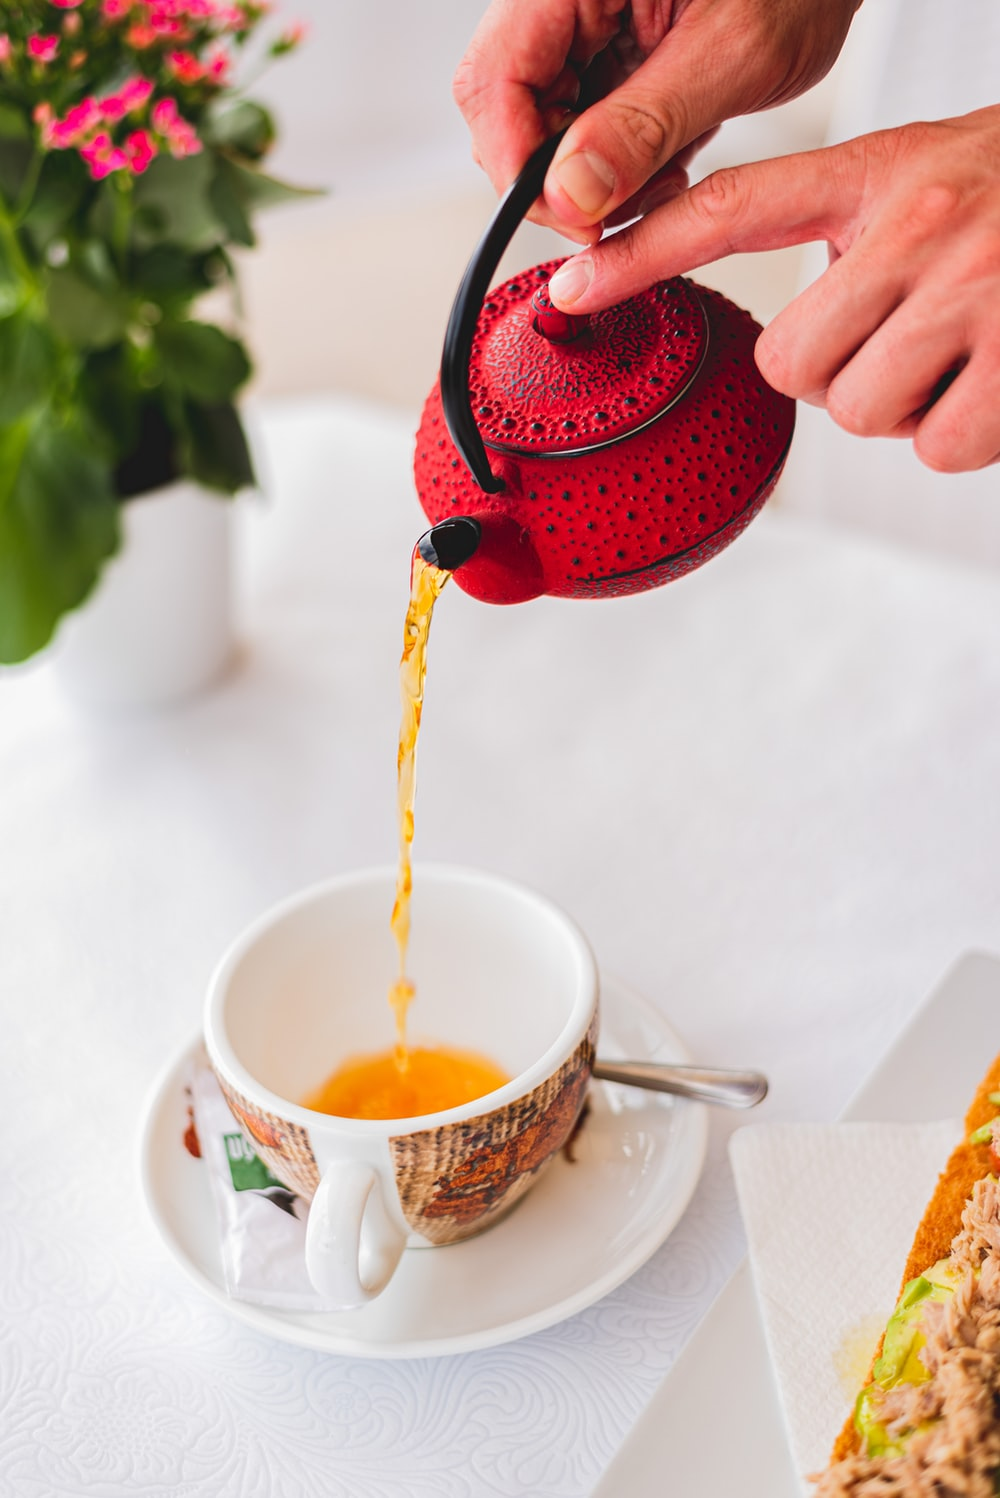 person pouring red liquid on white ceramic teacup